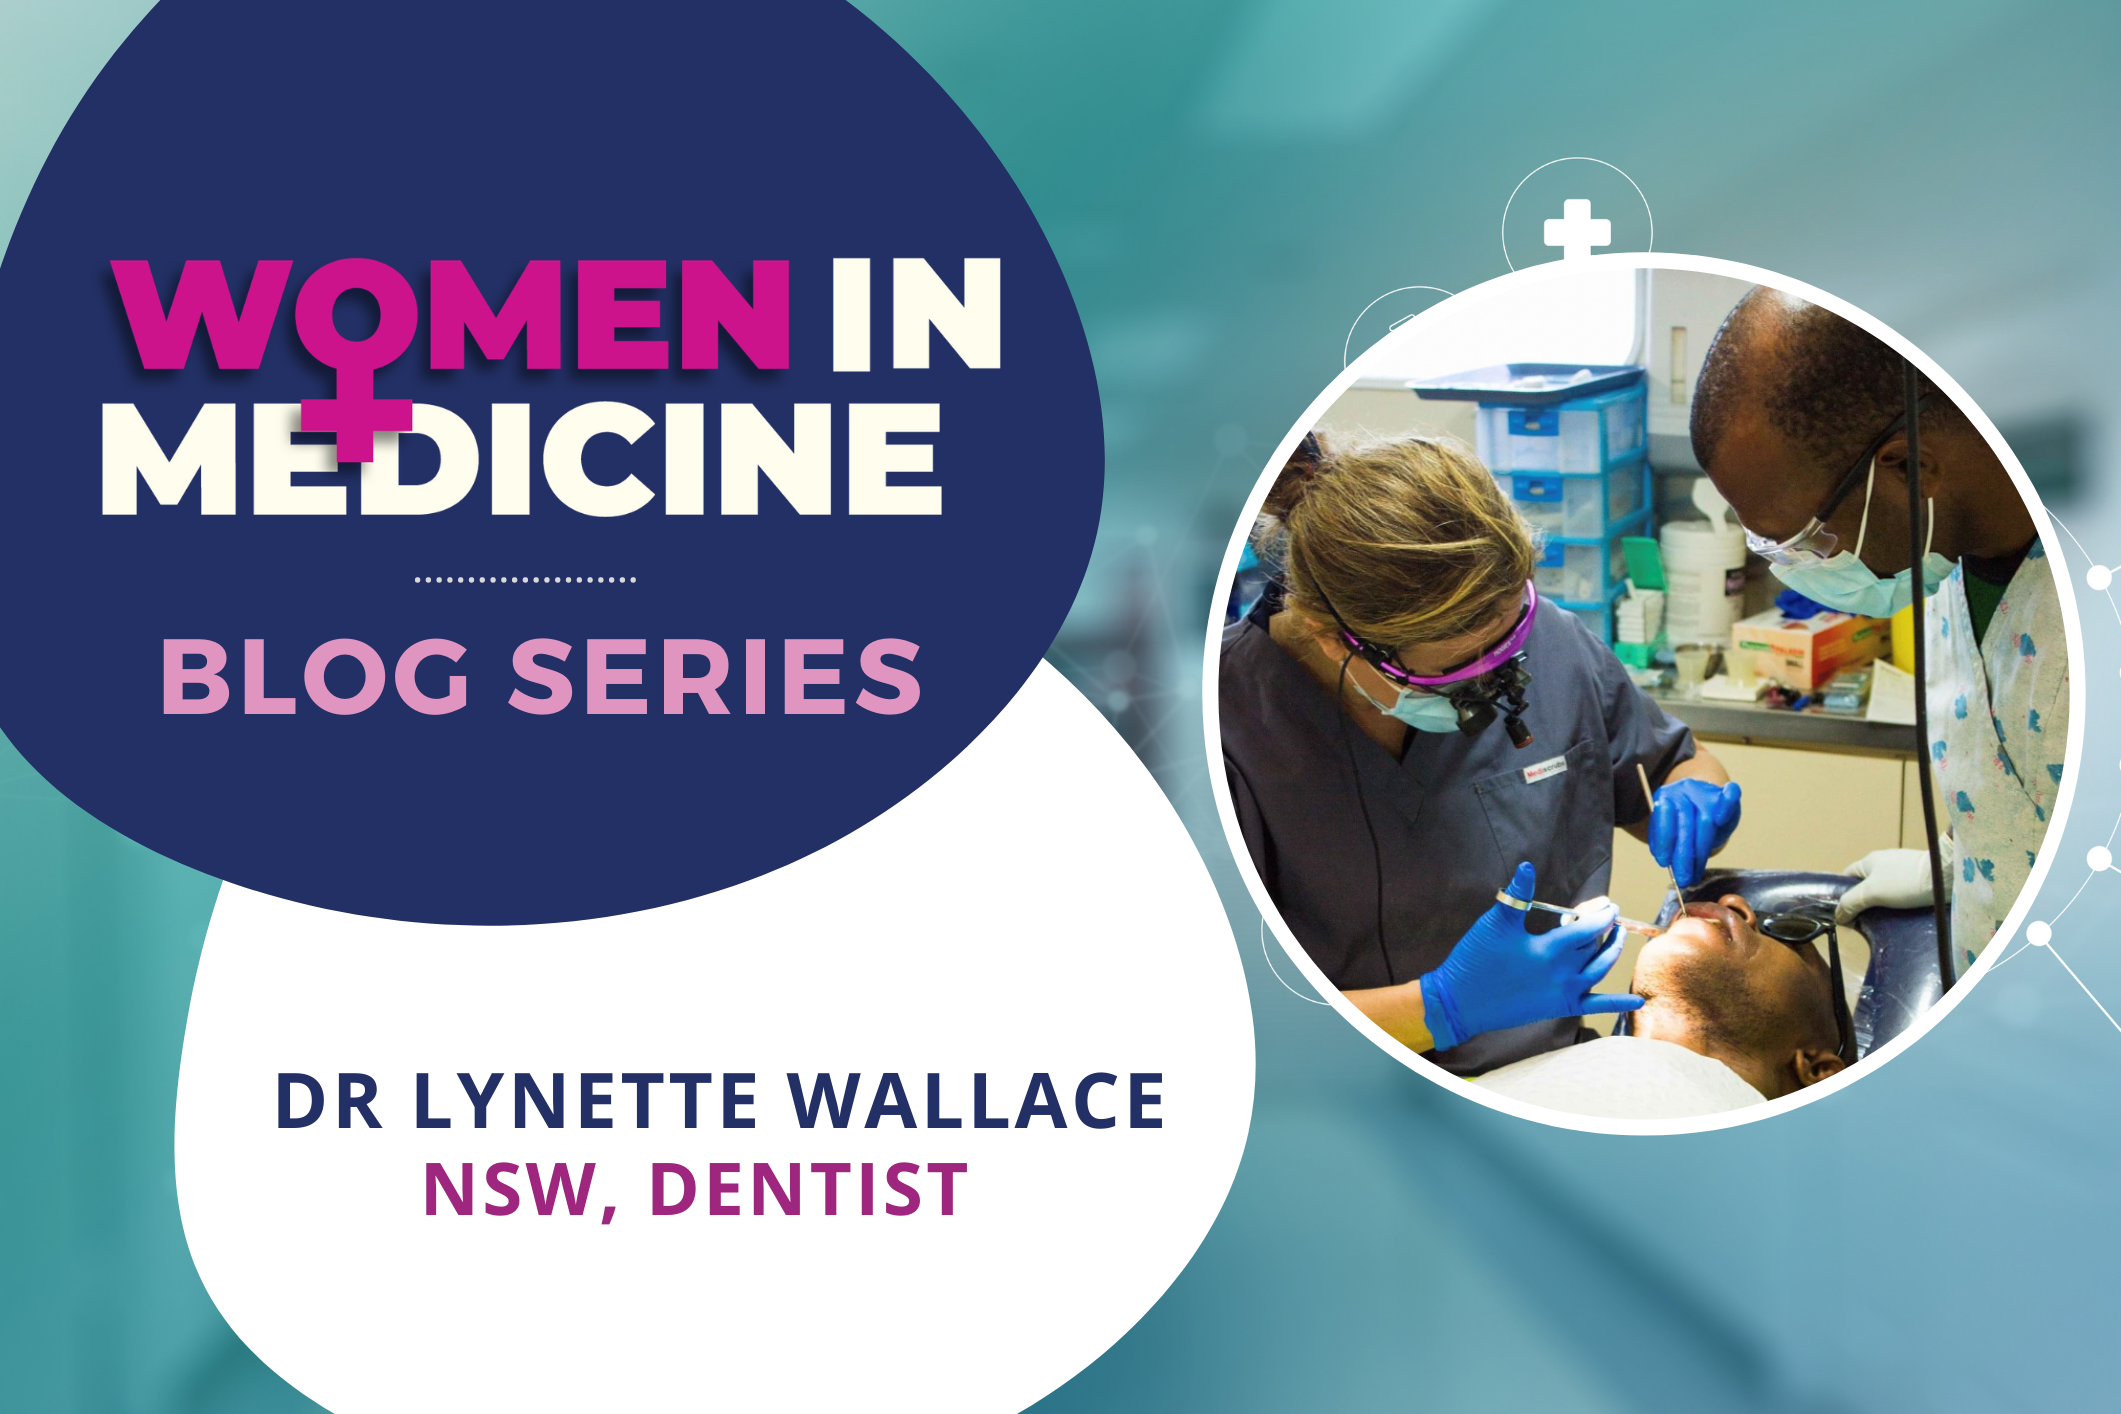 Women in Medicine Series - Spotlight on NSW Dentist, Dr Lynette Wallace Image